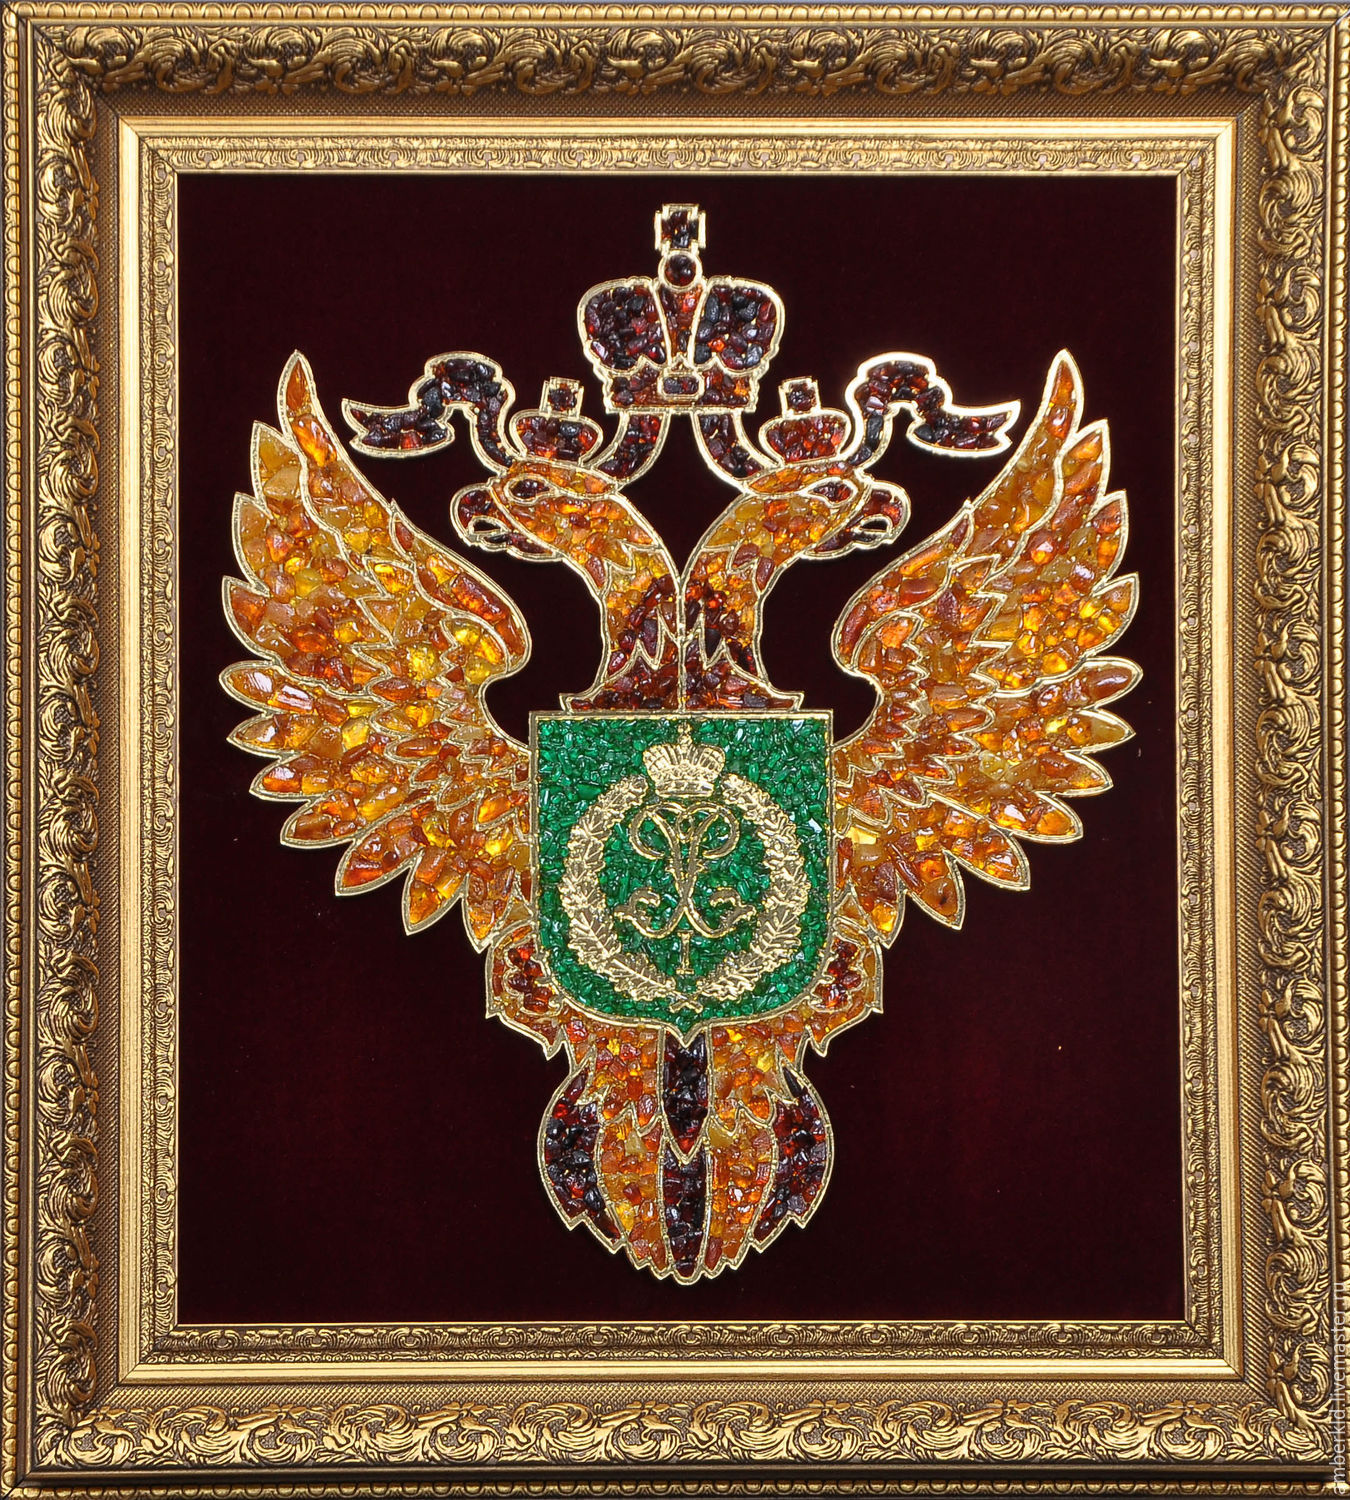 Coat of arms(Emblem) of the Federal forestry Agency of Russia (Rosleskhoz) from natural Baltic amber. The emblem will be a perfect exclusive gift to all who work in the field of forestry!